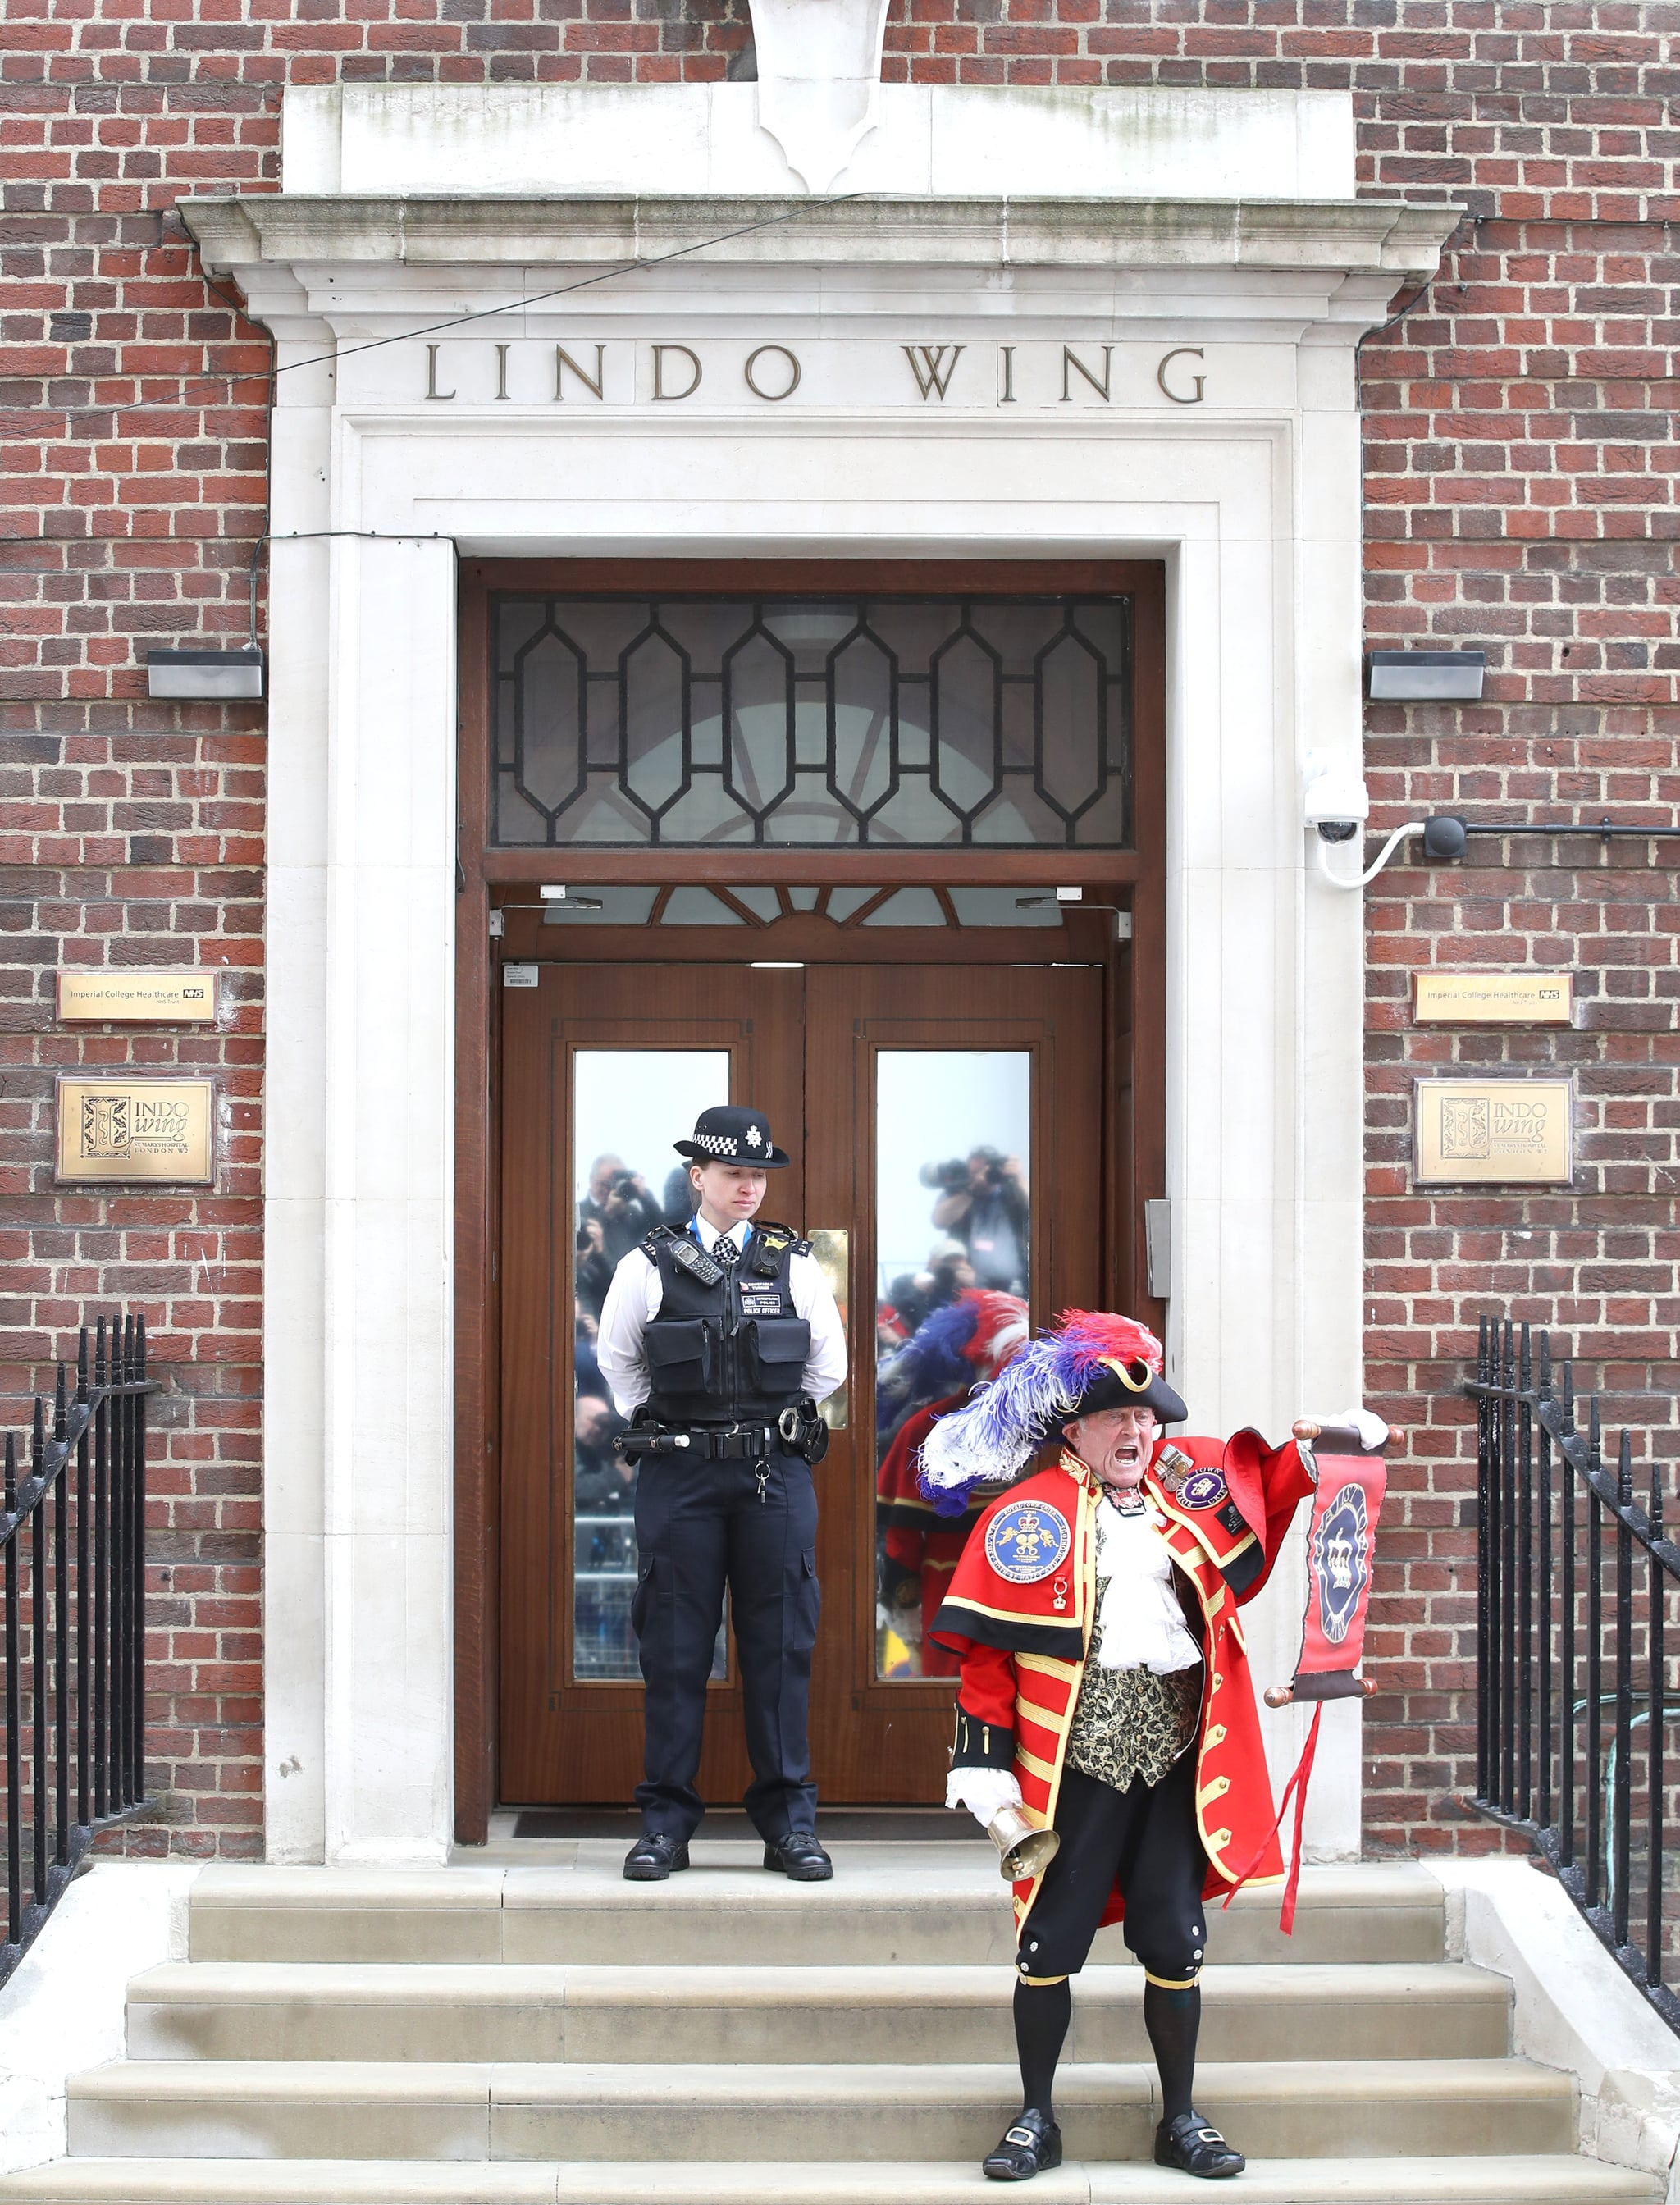 LONDON, ENGLAND - APRIL 23:  A town crier announces the birth of Catherine, Duchess of Cambridge and Prince William, Duke of Cambridge's son outside the Lindo Wing at St Mary's Hospital on April 23, 2018 in London, England.  The Duchess safely delivered a son at 11:01 am, weighing 8lbs 7oz, who will be fifth in line to the throne.  (Photo by Chris Jackson/Getty Images)